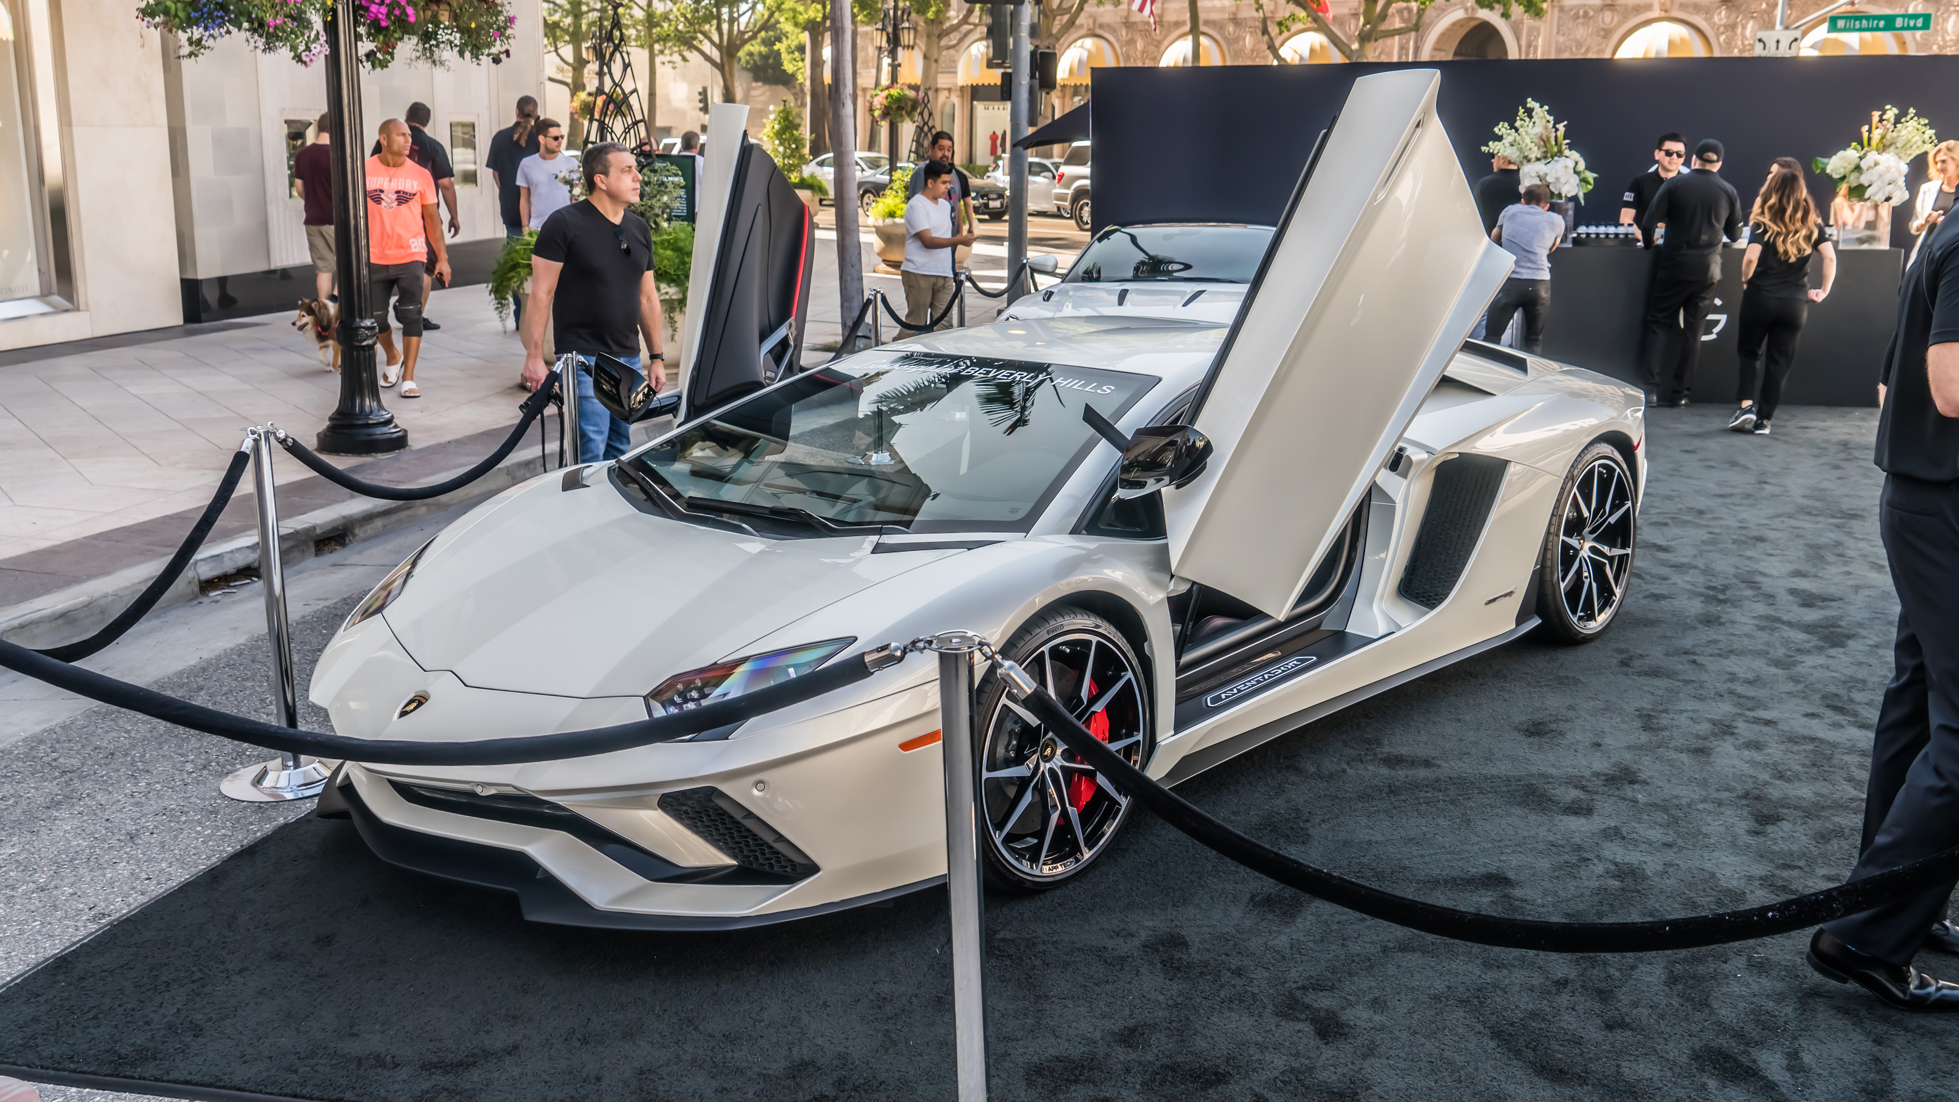 RODEO DRIVE CONCOURS A OGARA BEVERLY HILLS EXPERIENCE WORLD OF - Beverly hills car show